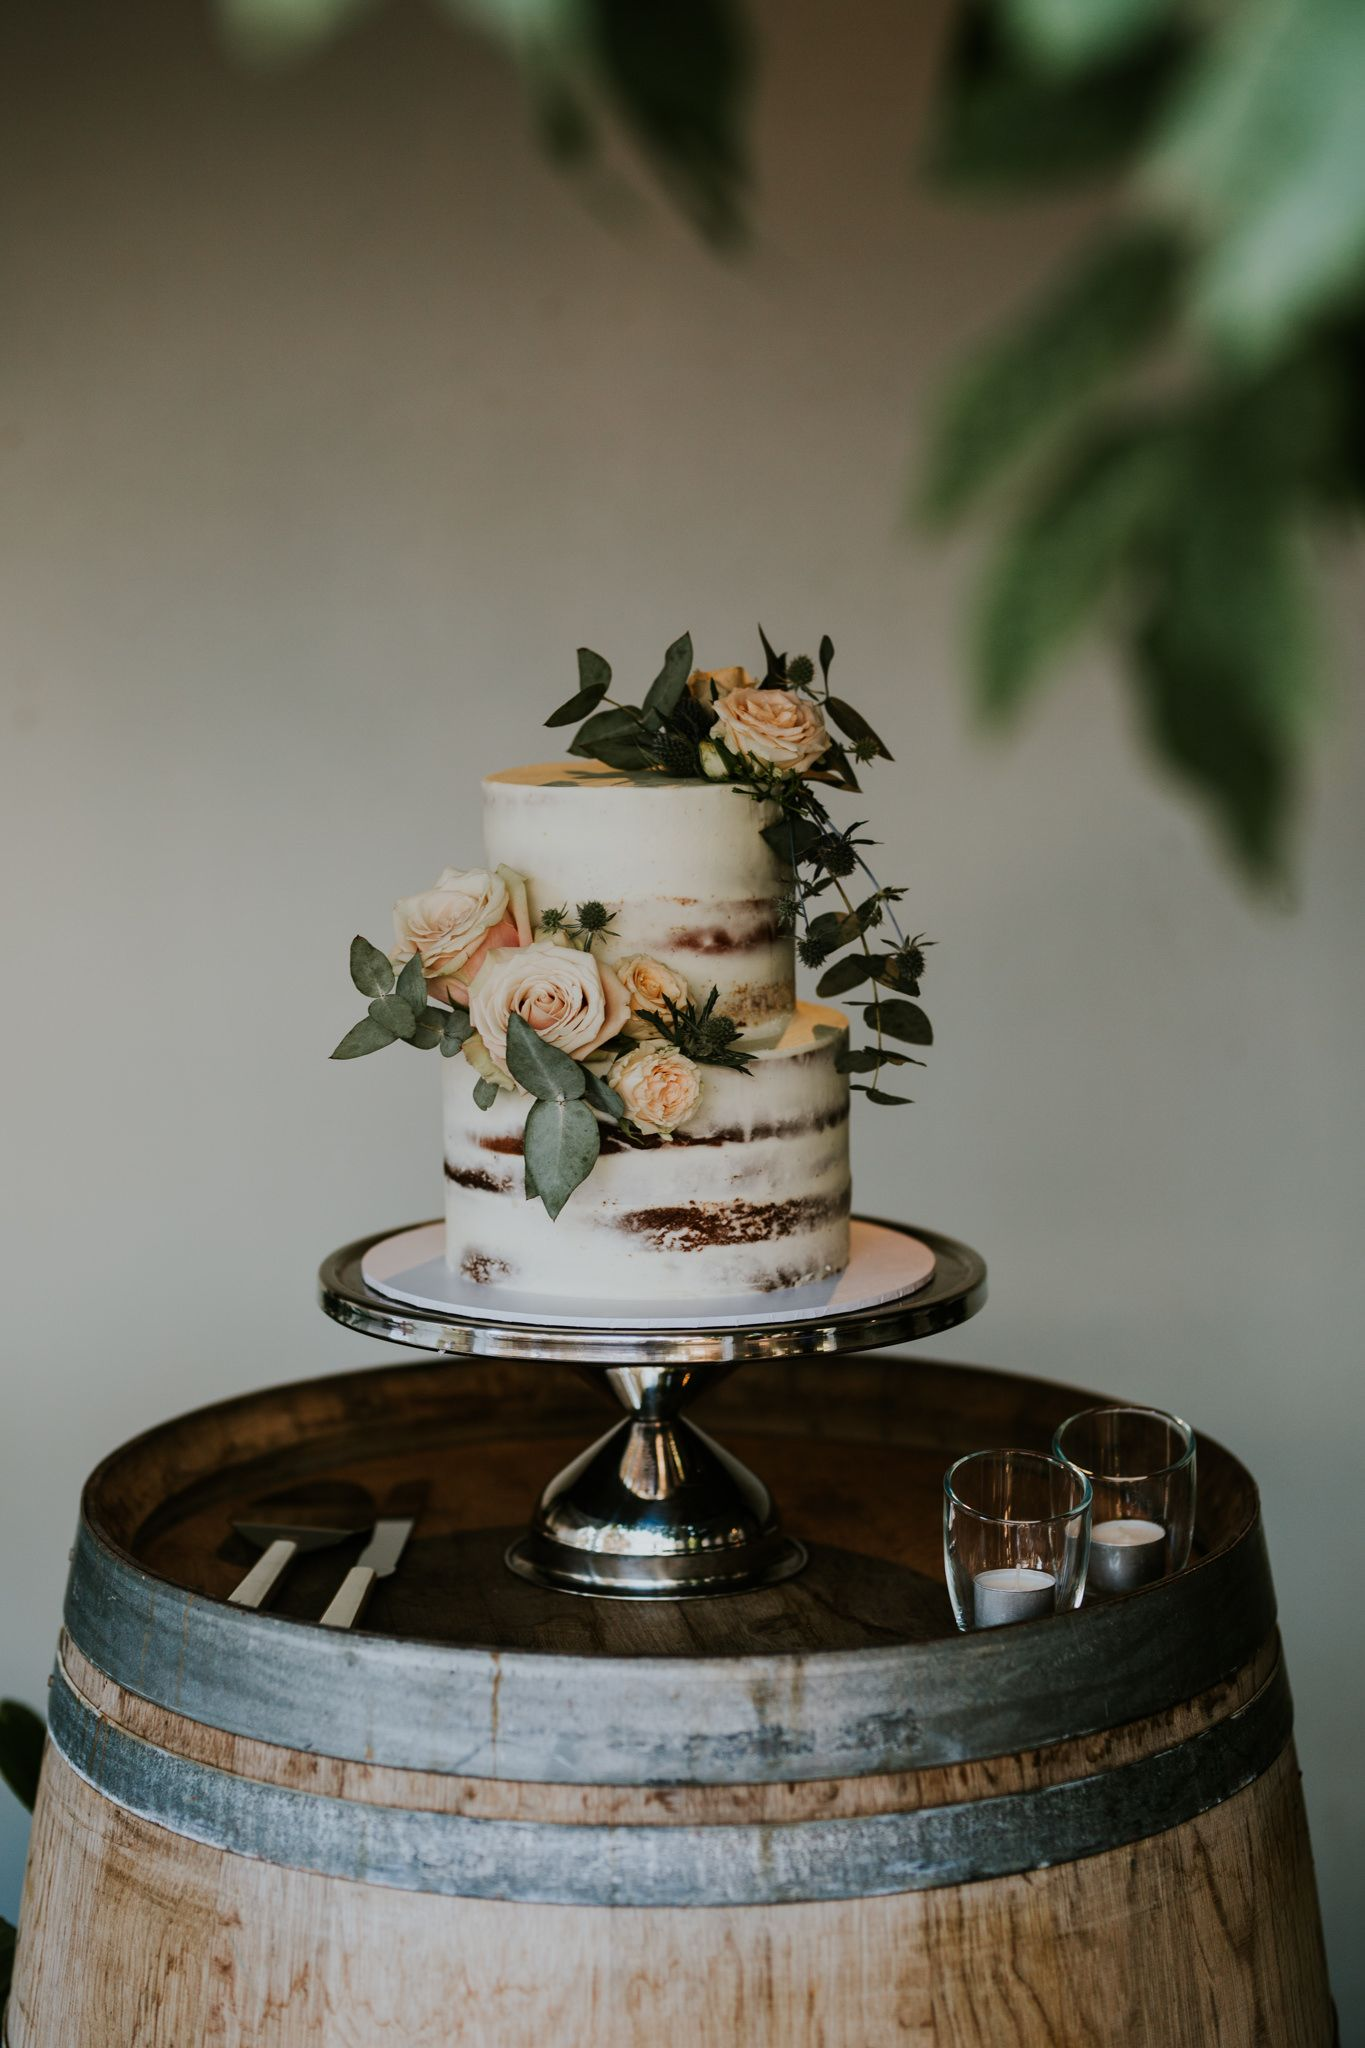 Rustic elegance combining roses, sea holly and eucalyptus